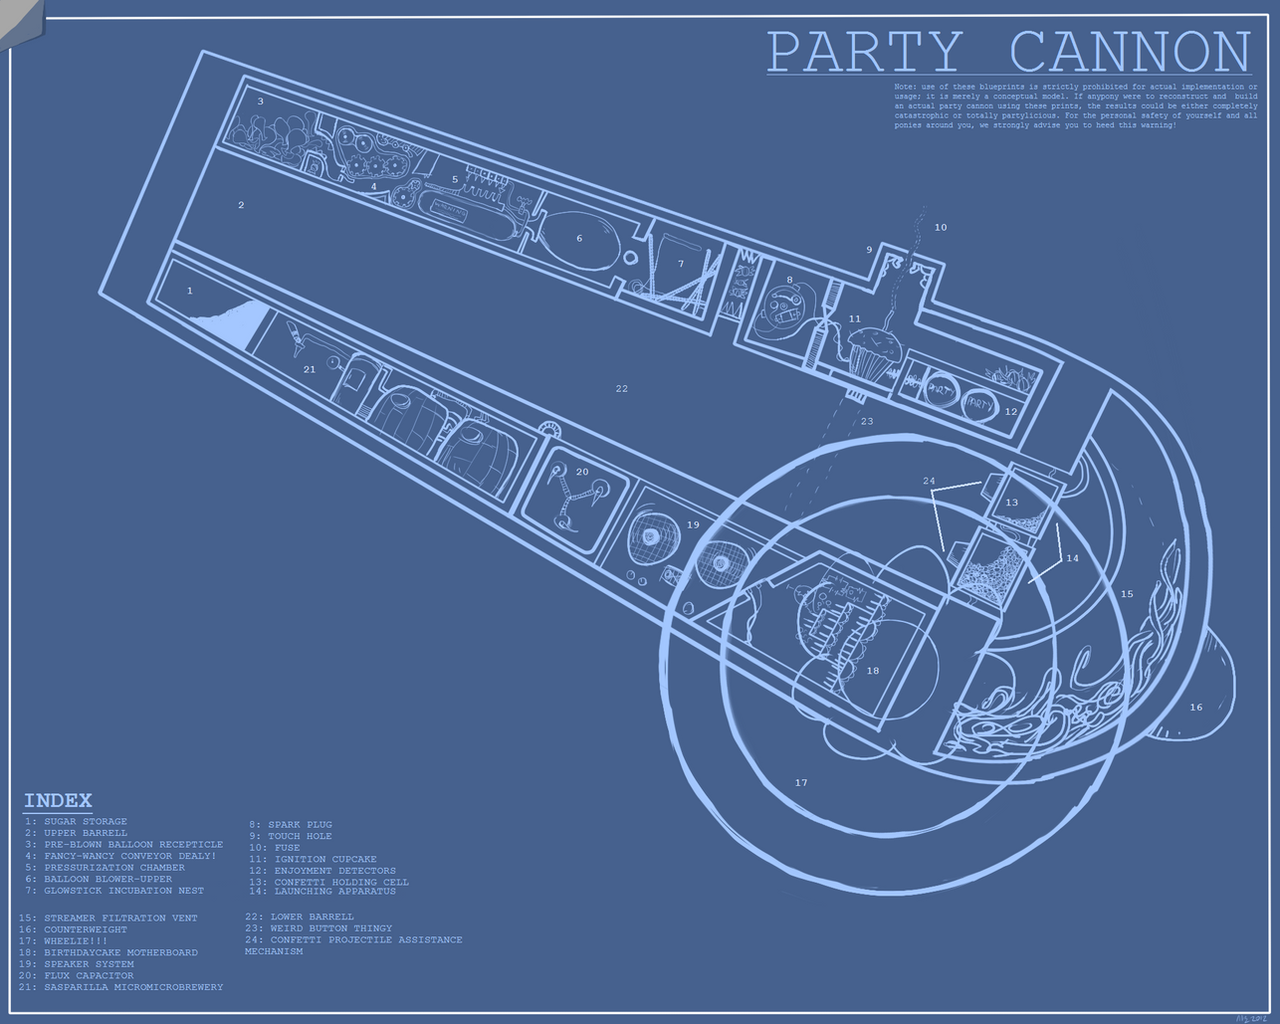 Party cannon blueprints by doctorpepperphd on deviantart party cannon blueprints by doctorpepperphd party cannon blueprints by doctorpepperphd malvernweather Image collections